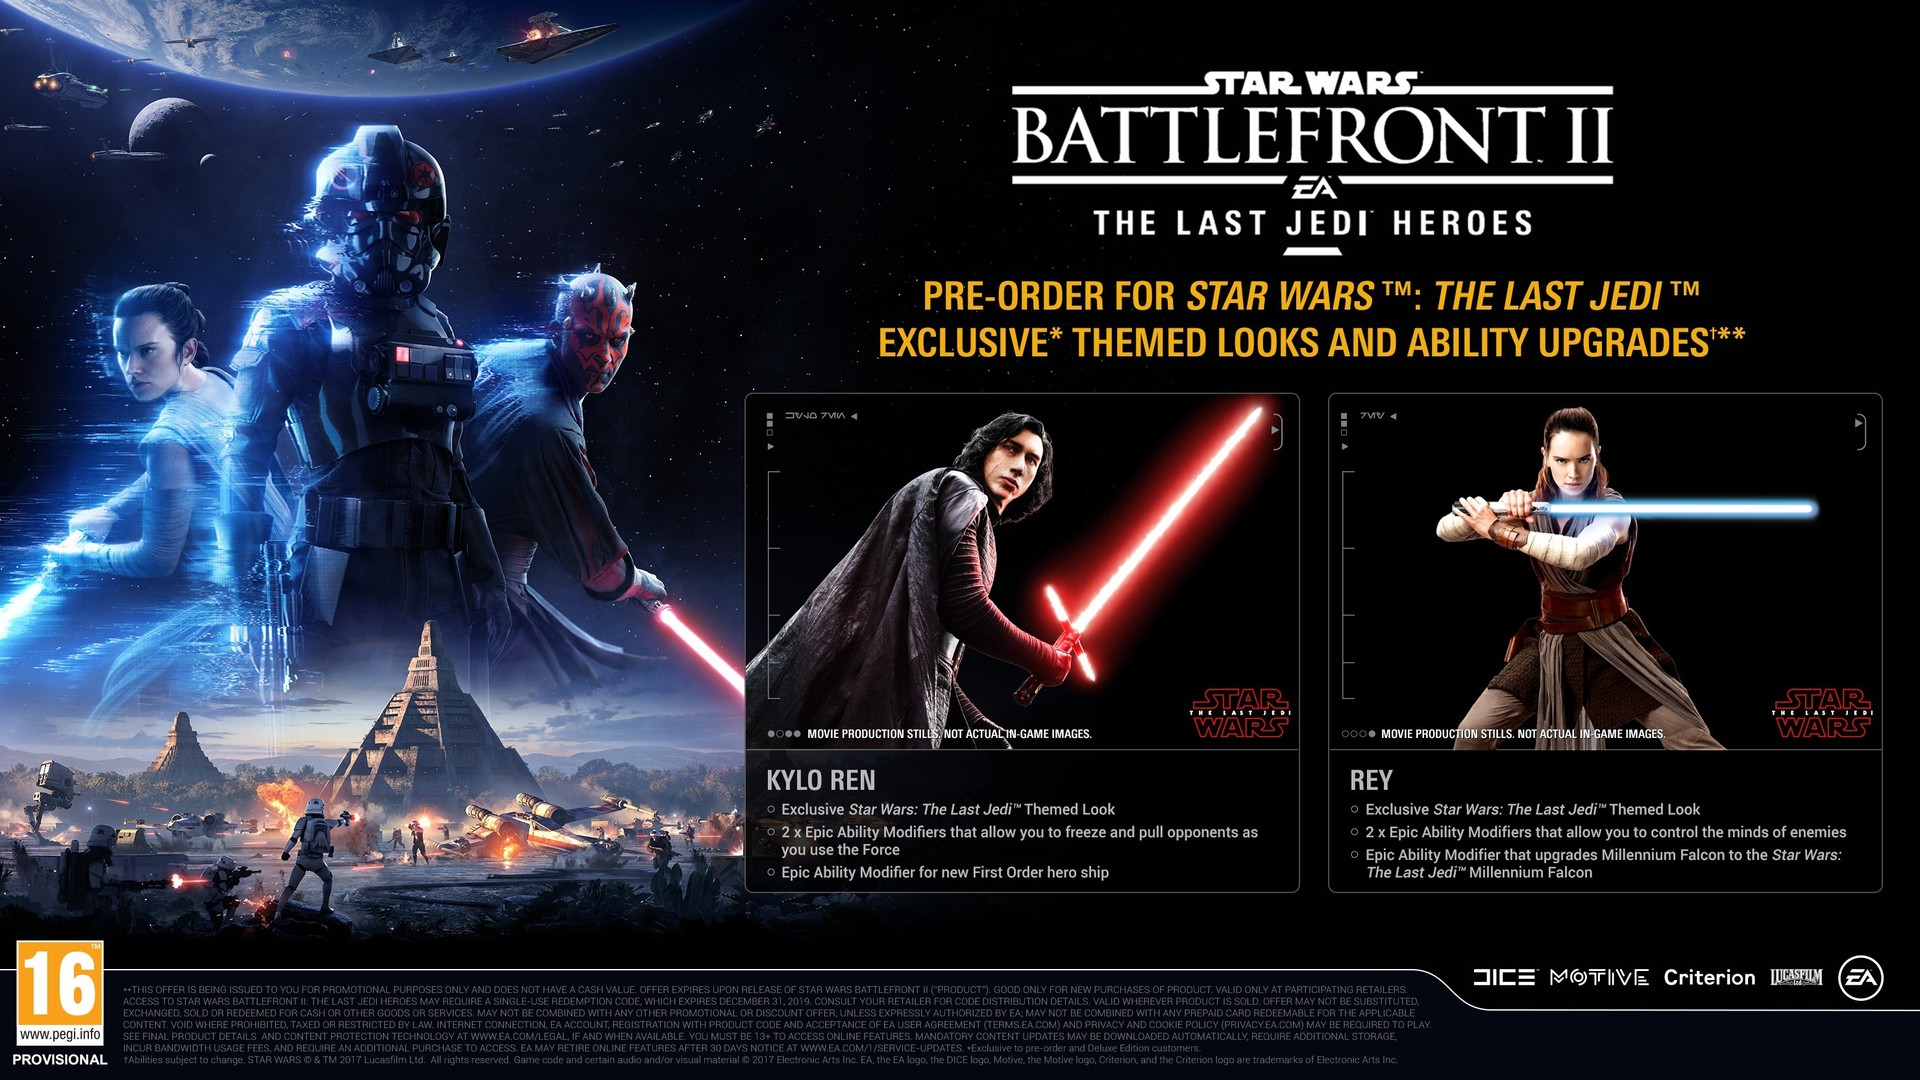 Star Wars Battlefront 2 The Last Jedi Heroes DLC